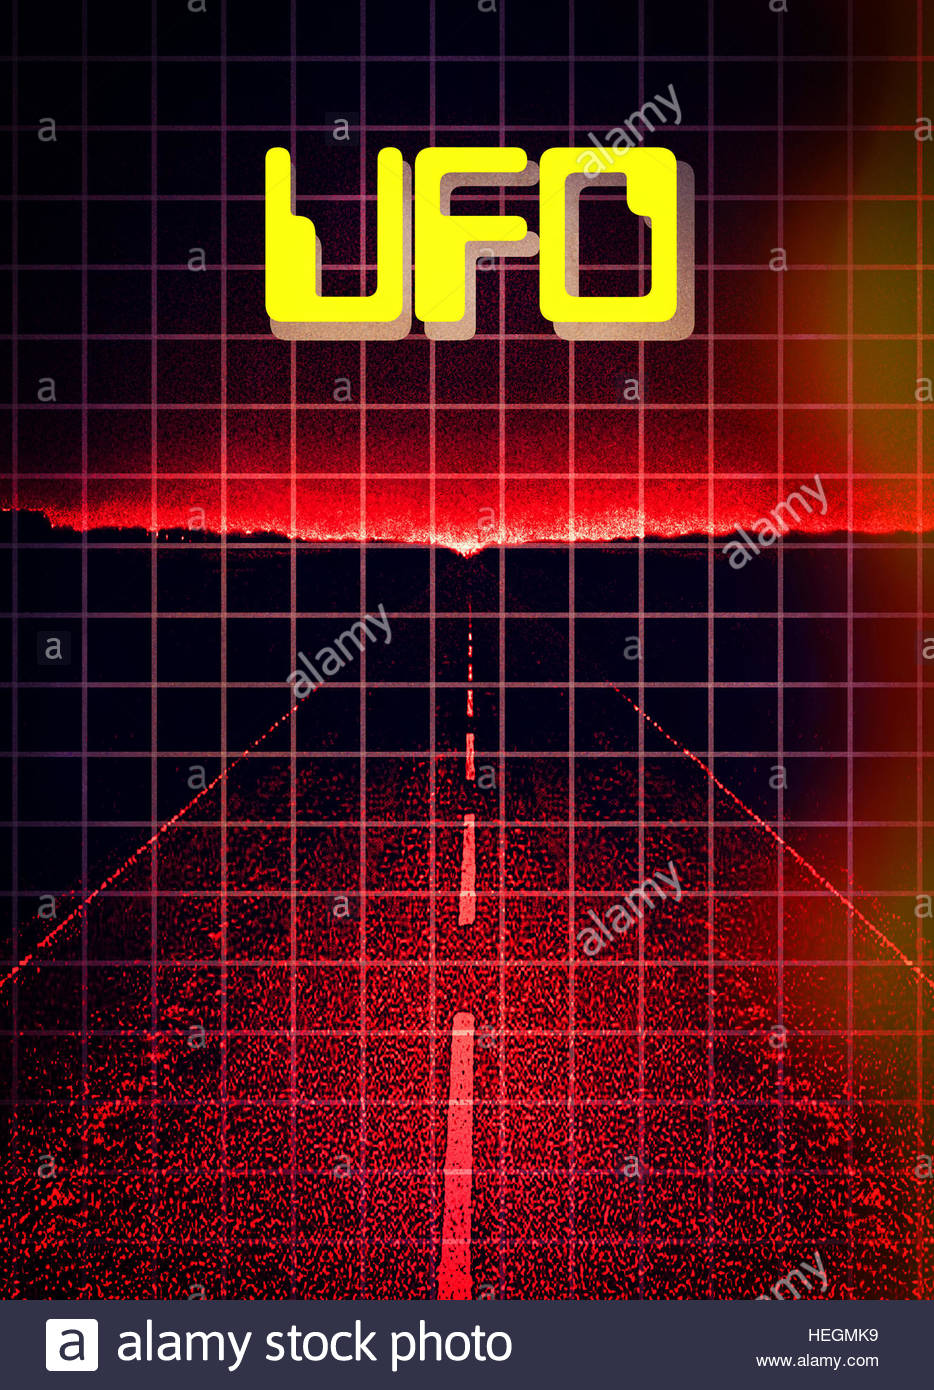 UFO flying saucer night retro flying space craft grays aliens abduction visitorsStock Photo